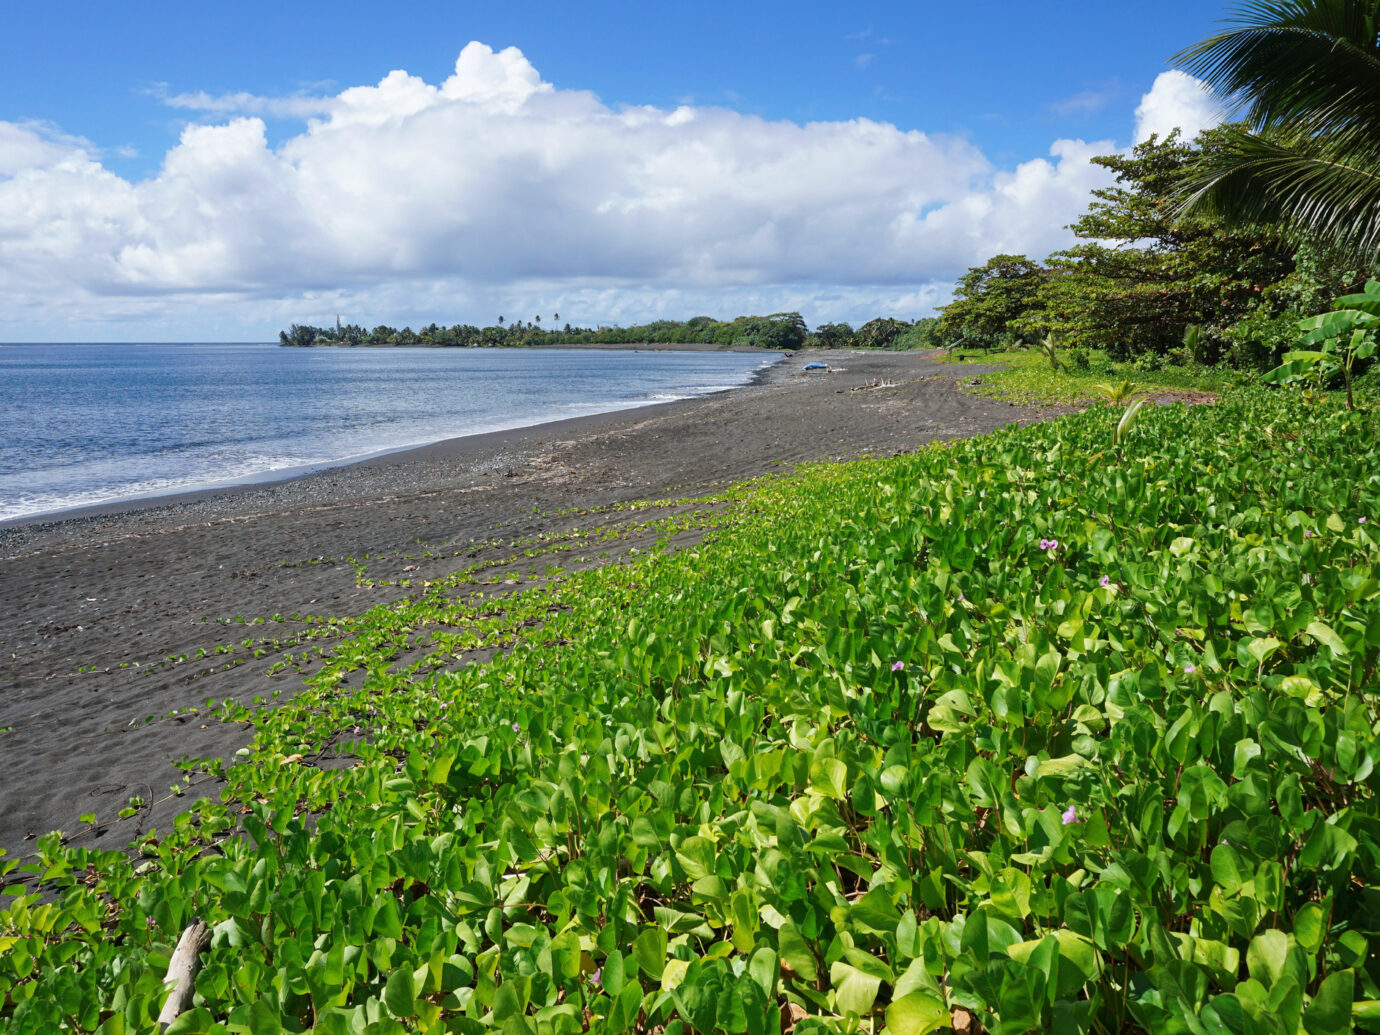 Vegetation (Ipomoea pes-caprae) on a black sand beach of Tahiti island near Tautira village, French Polynesia, south Pacific ocean